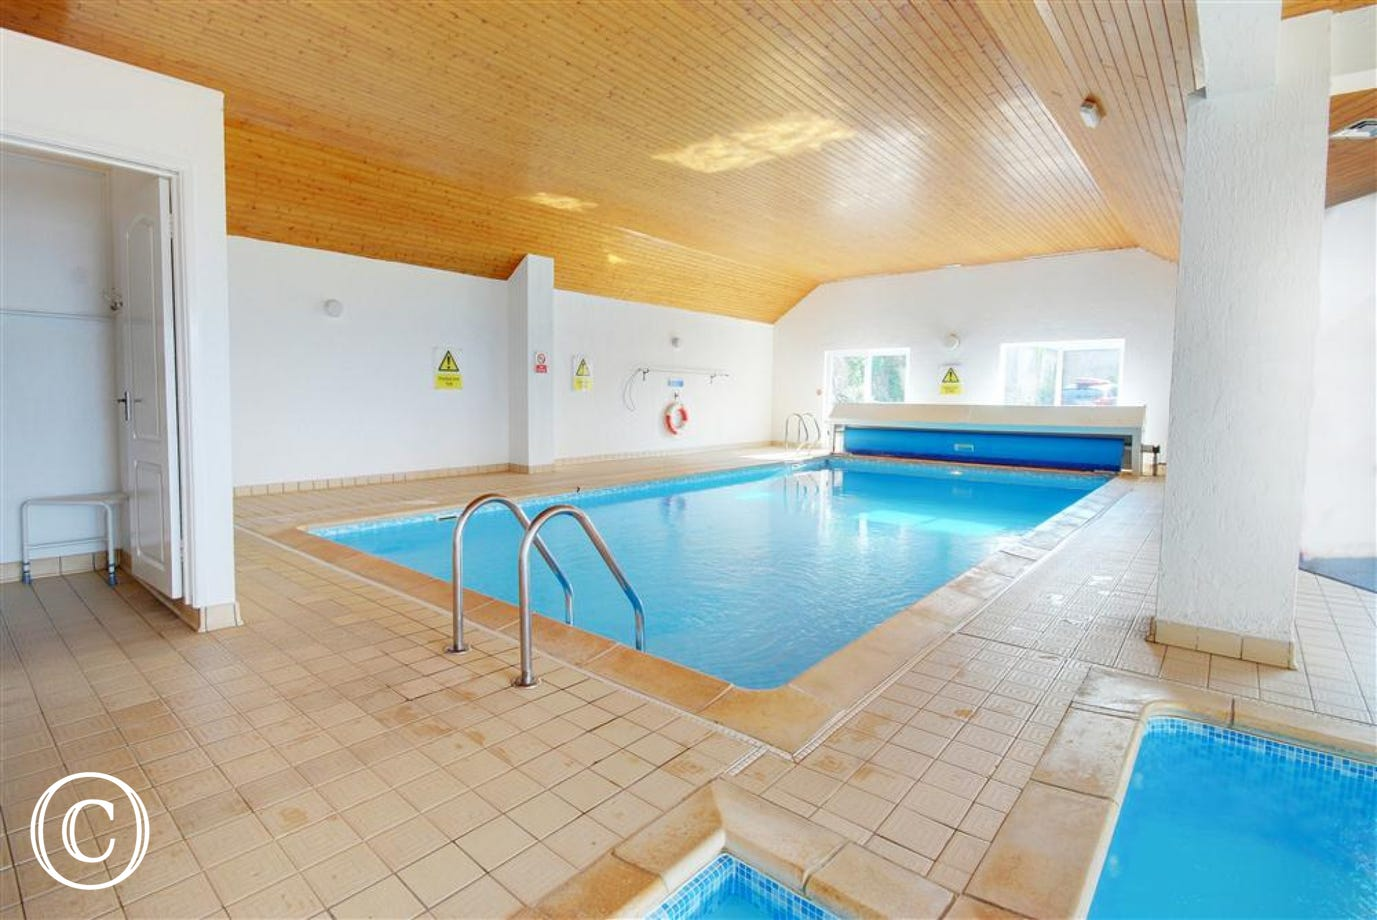 The apartment benefits from the heated indoor swimming pool with a smaller pool for children